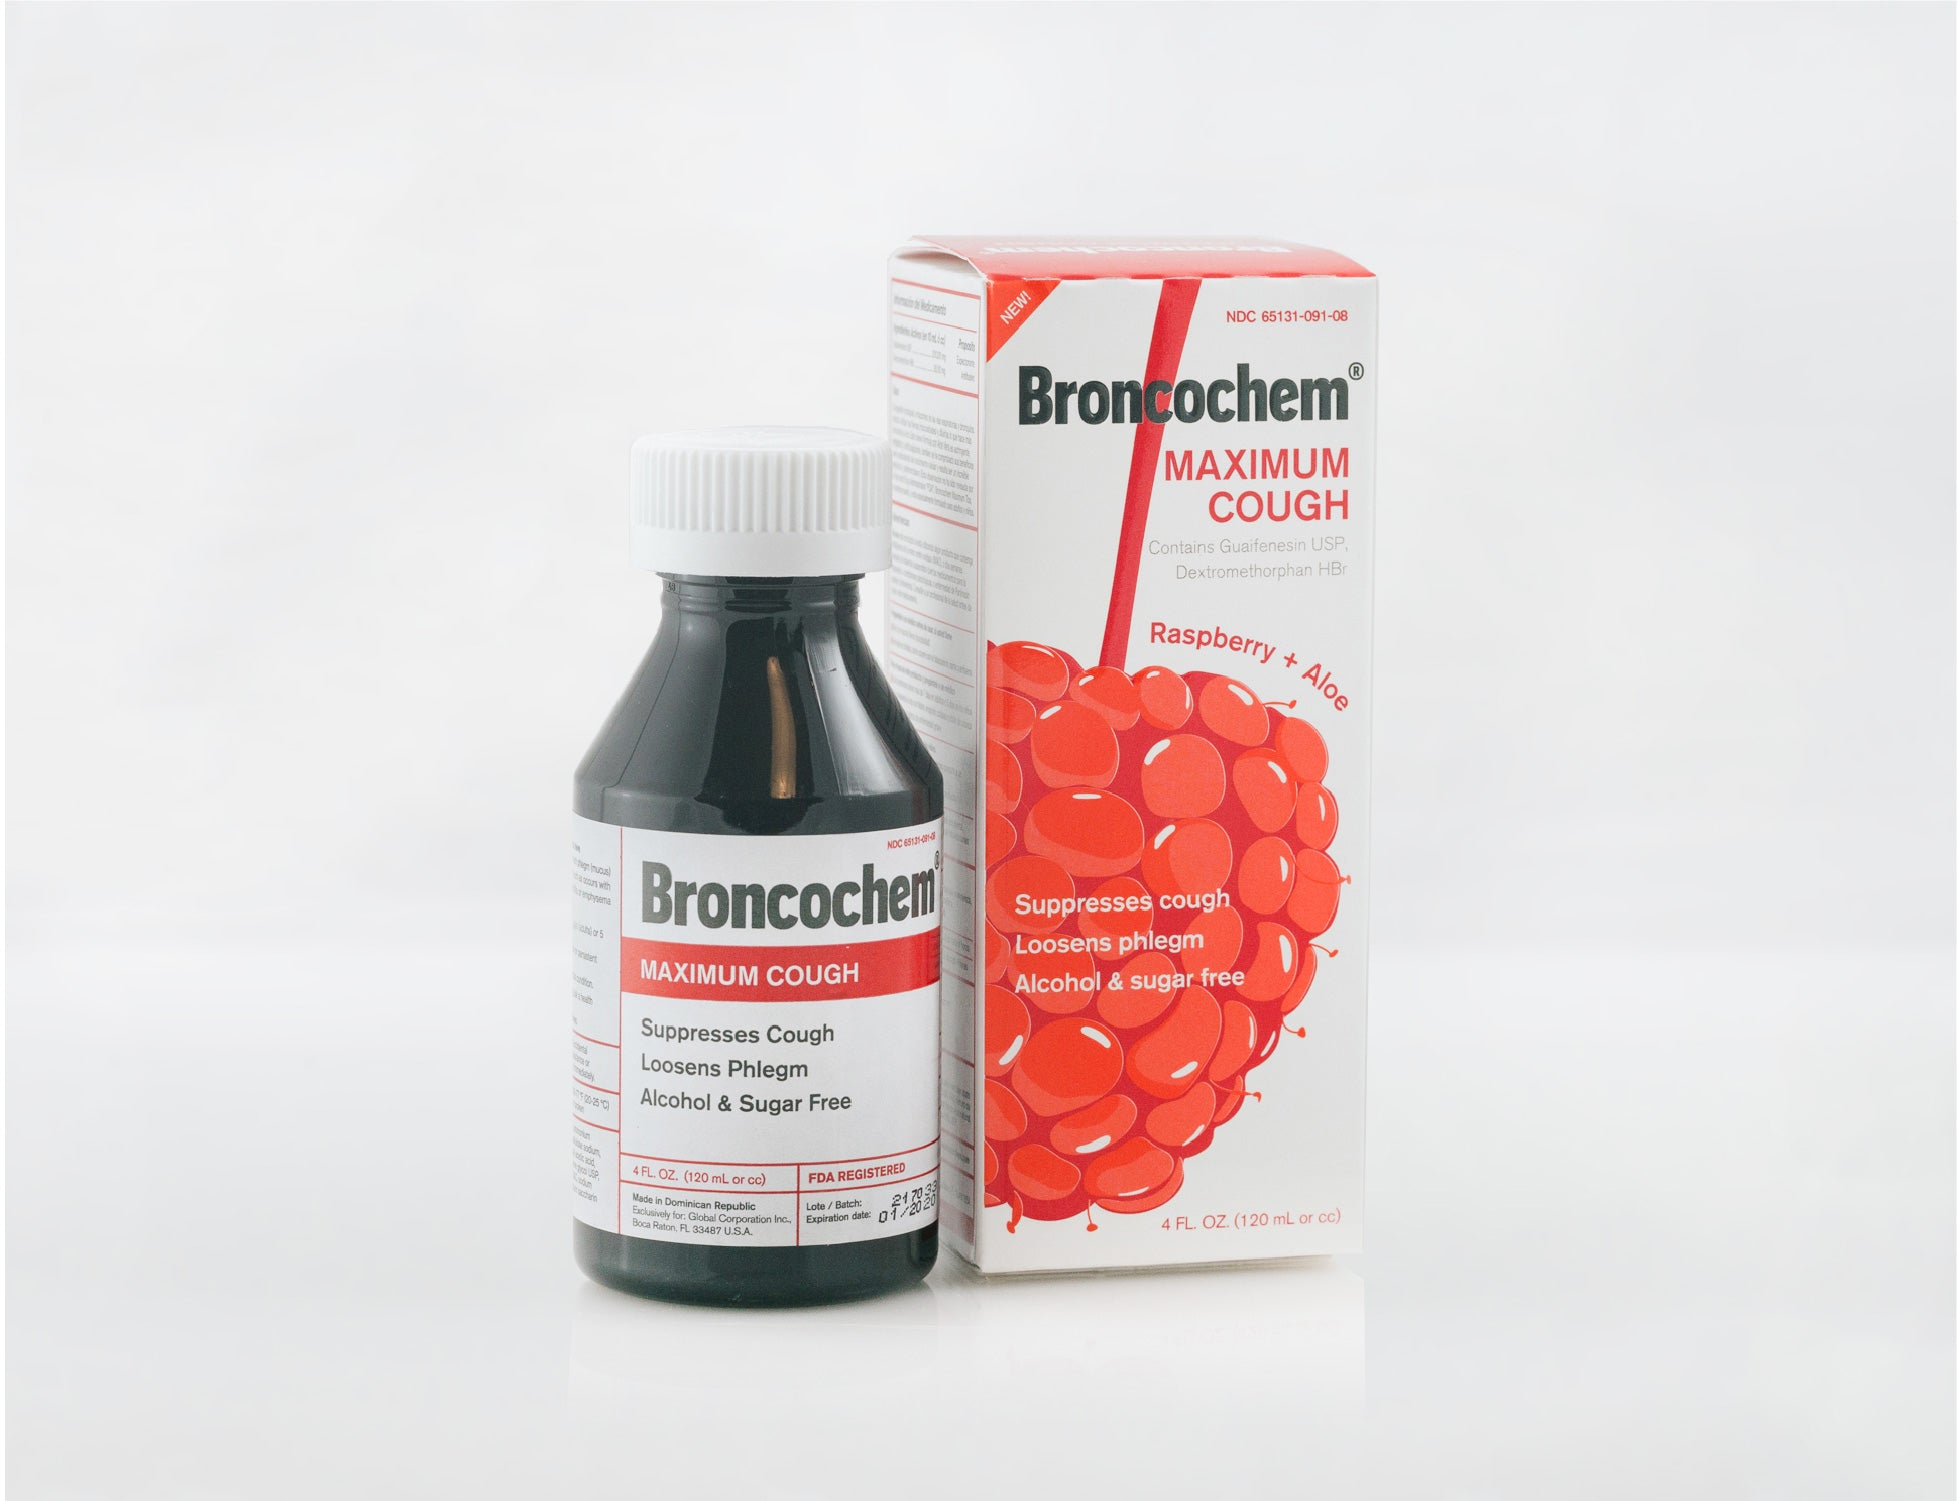 Broncochem Maximum Cough